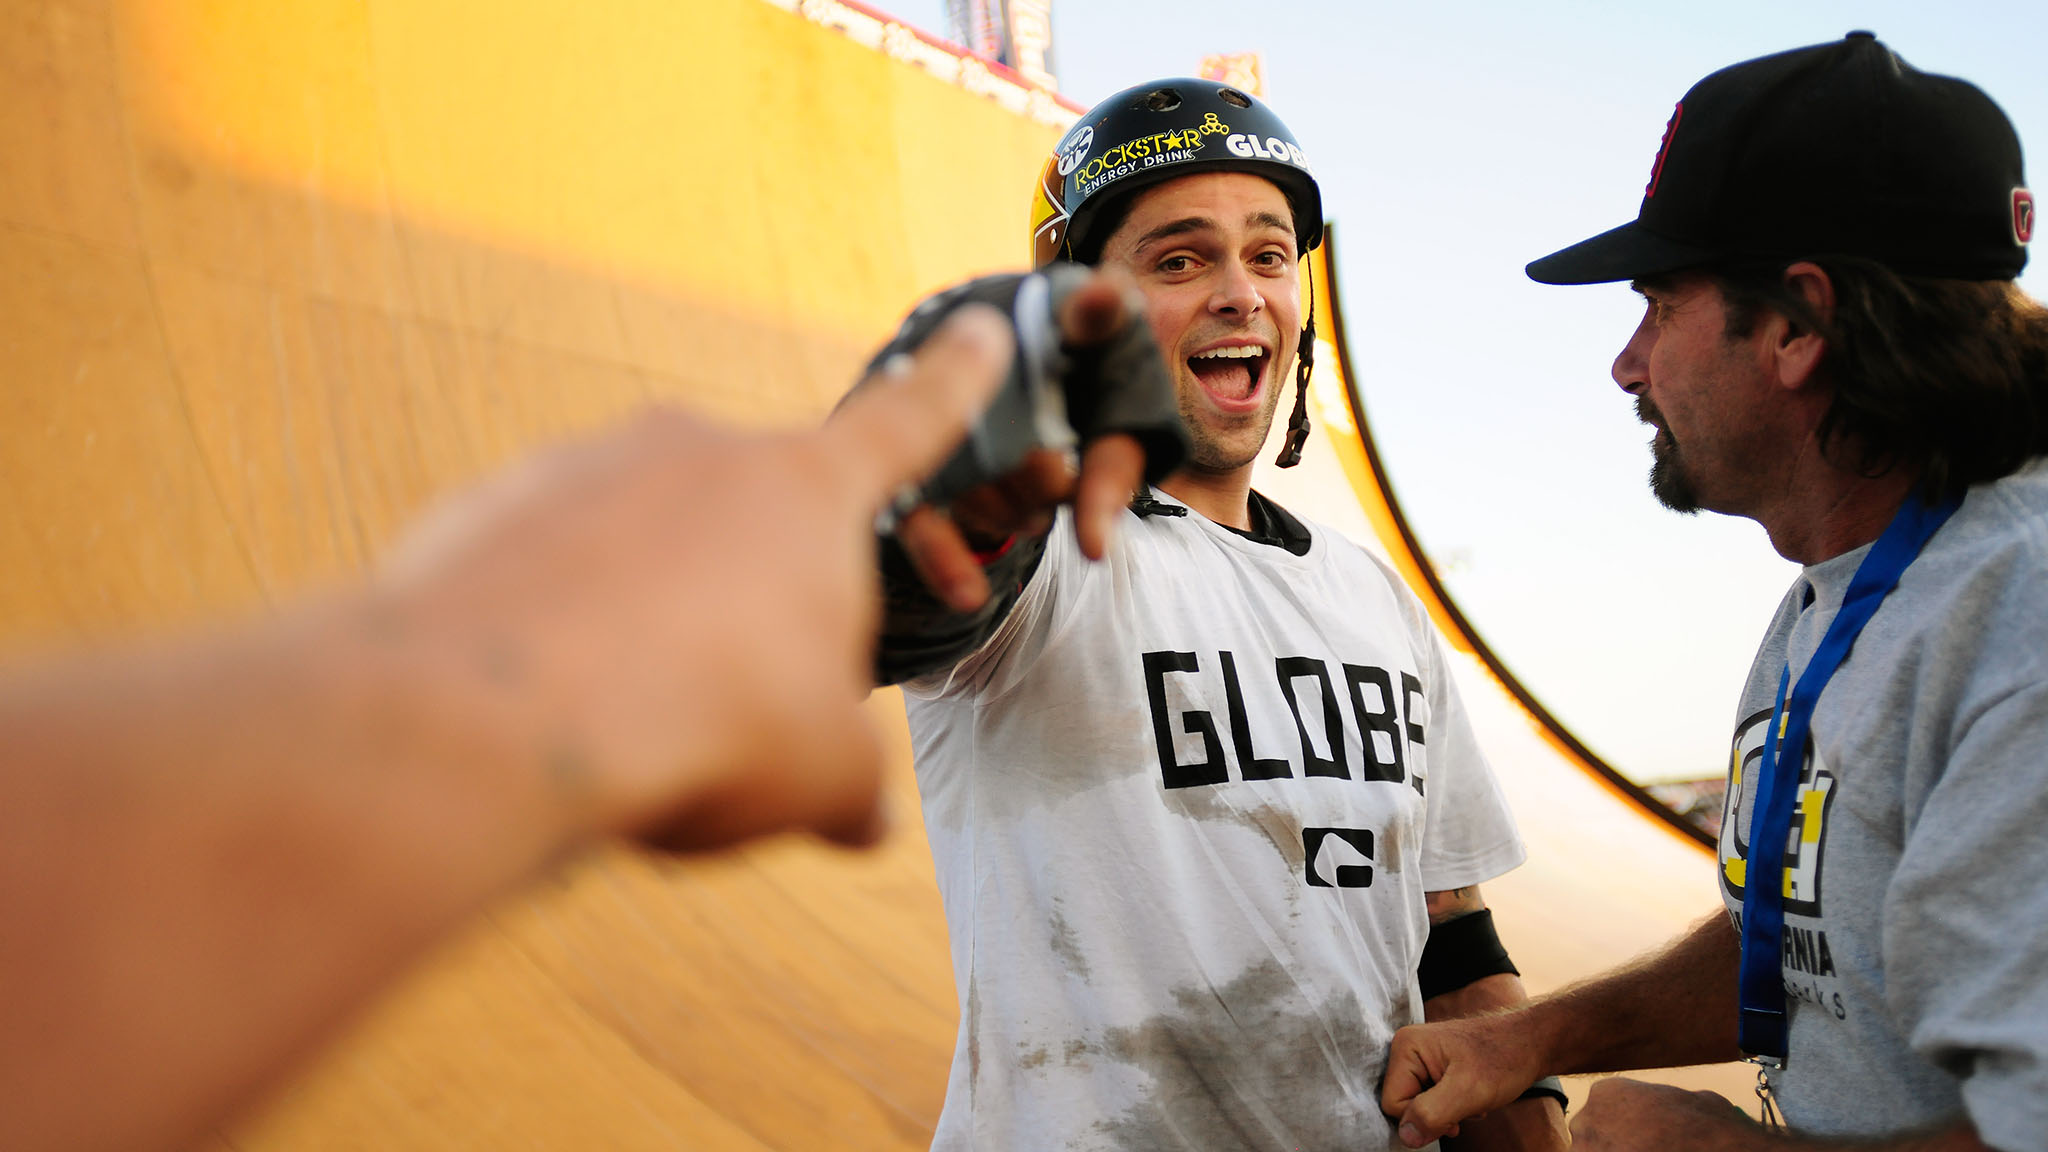 Even though Elliot Sloan has been competing in Skateboard Big Air since 2009, he didn't take home his first medal until X Games Foz do Iguau this past April. The 25-year-old has medaled in every Big Air event in 2013, but none of them were gold -- until Thursday in L.A.